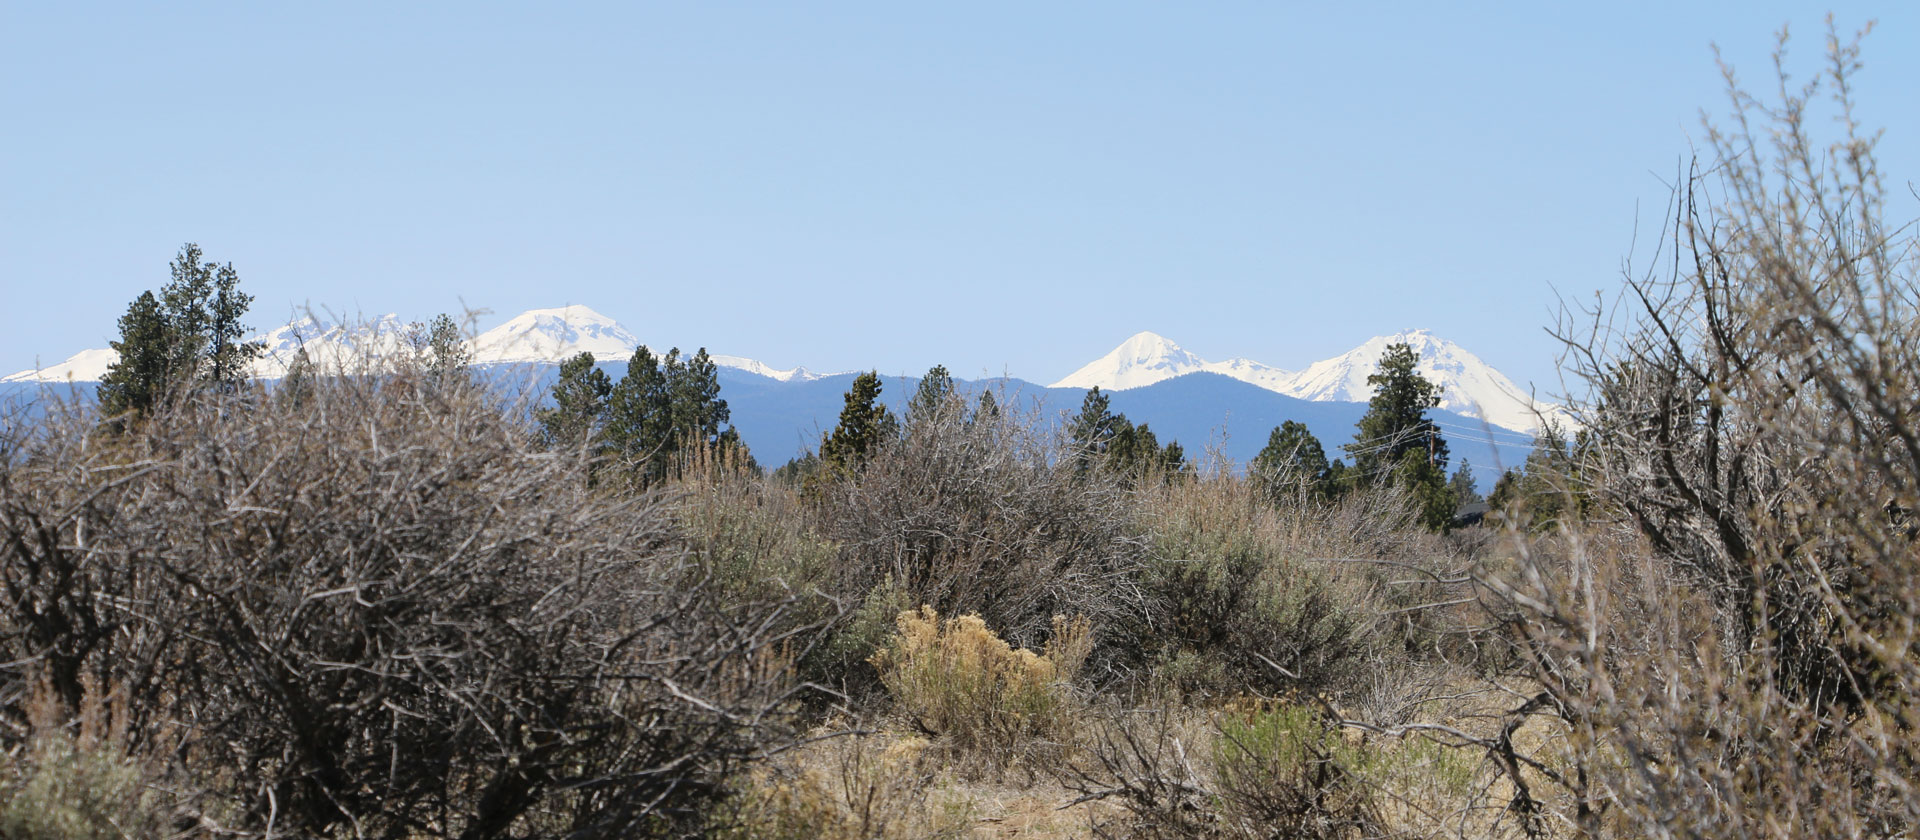 Photo of Cascade Mountains and sagebrush taken from Southeast area of Bend.